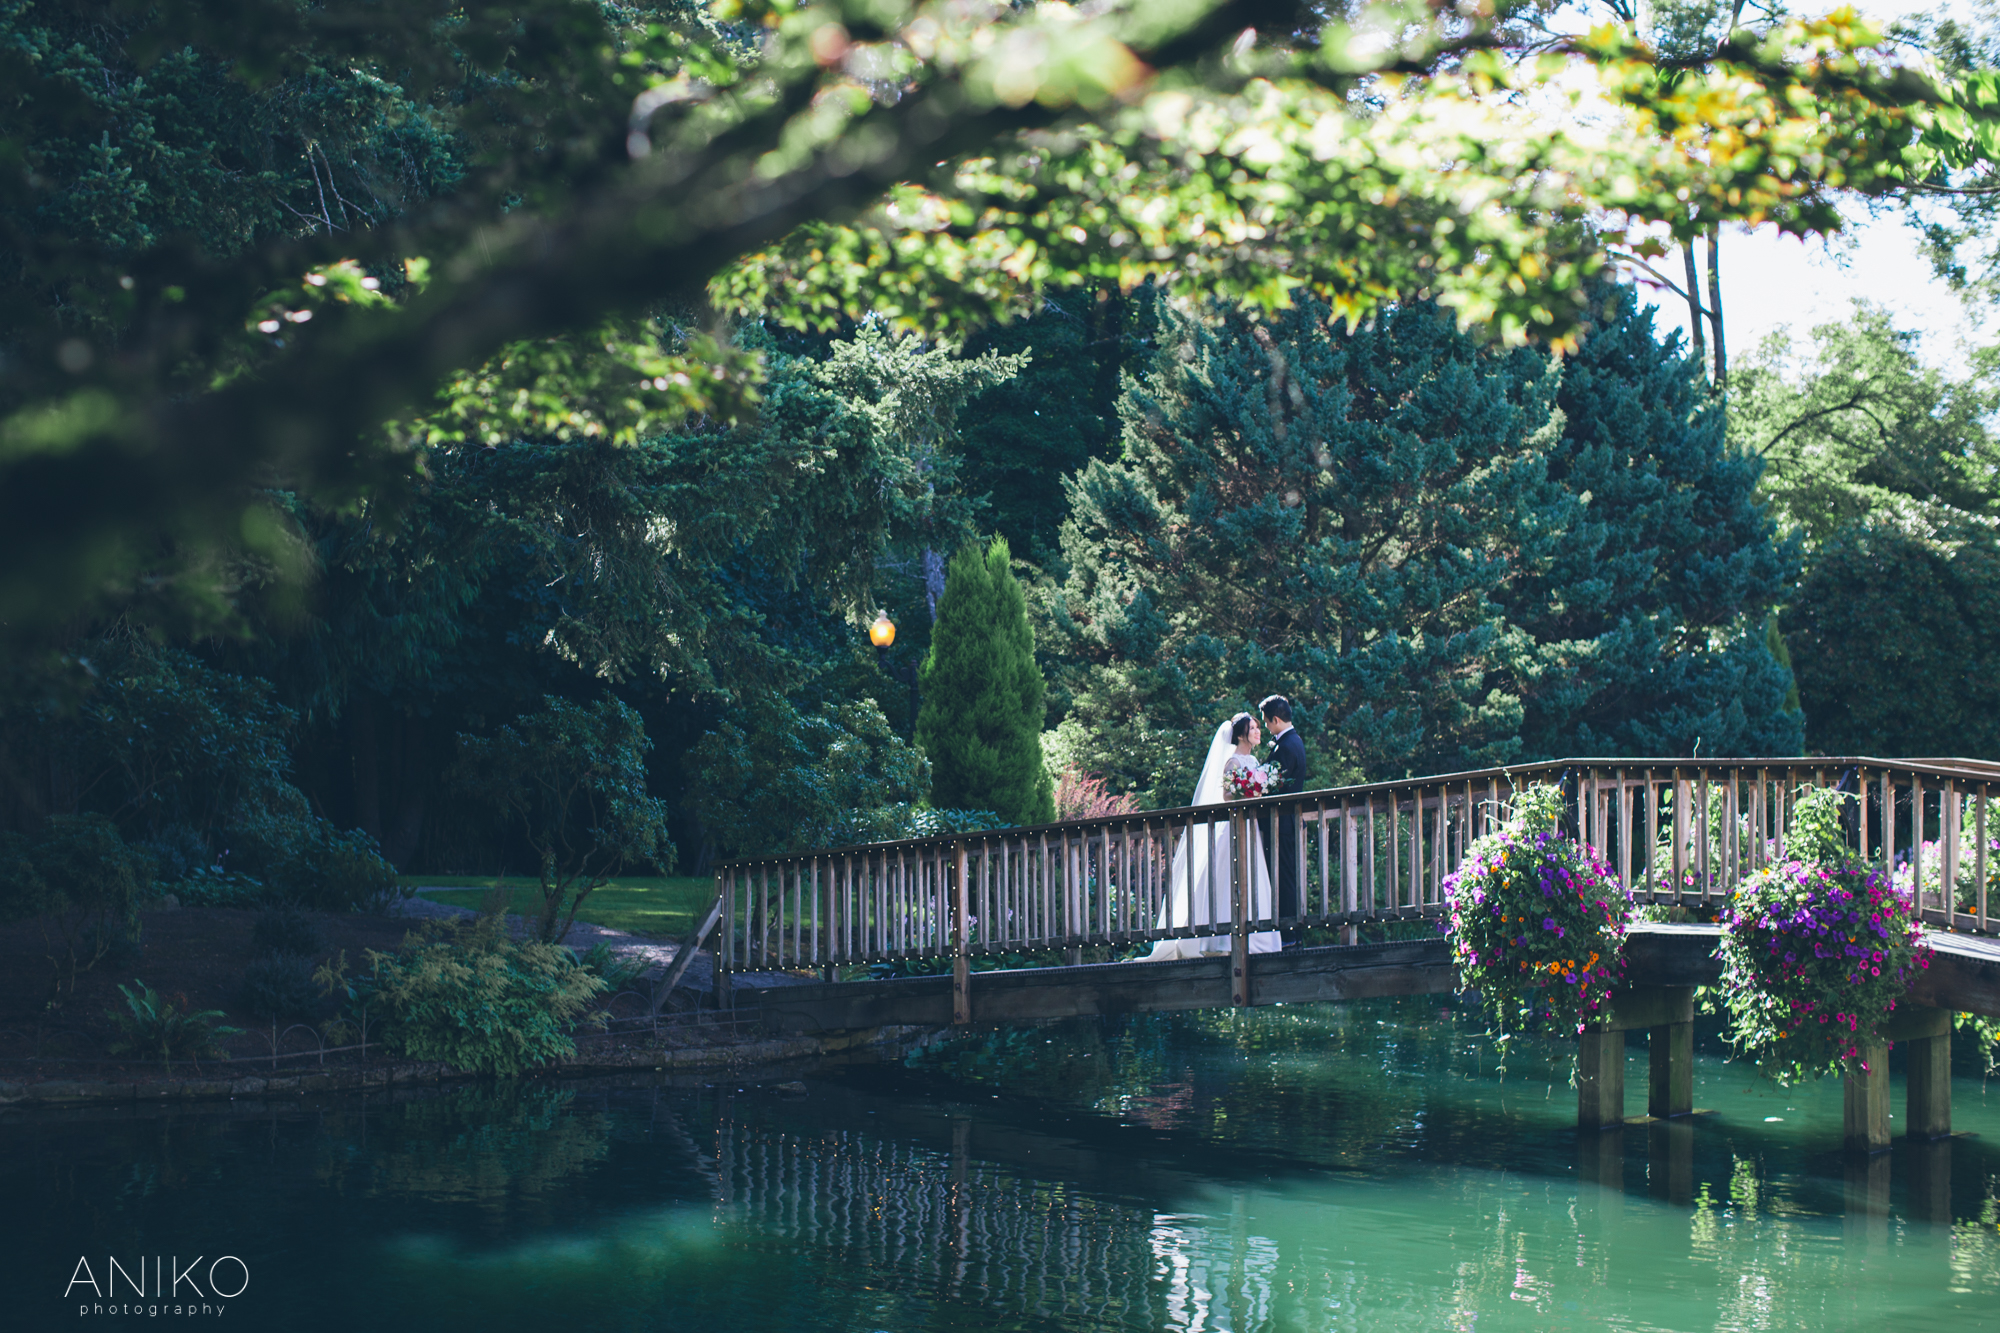 lakeside-gardens-wedding-aniko-photography-2.jpg